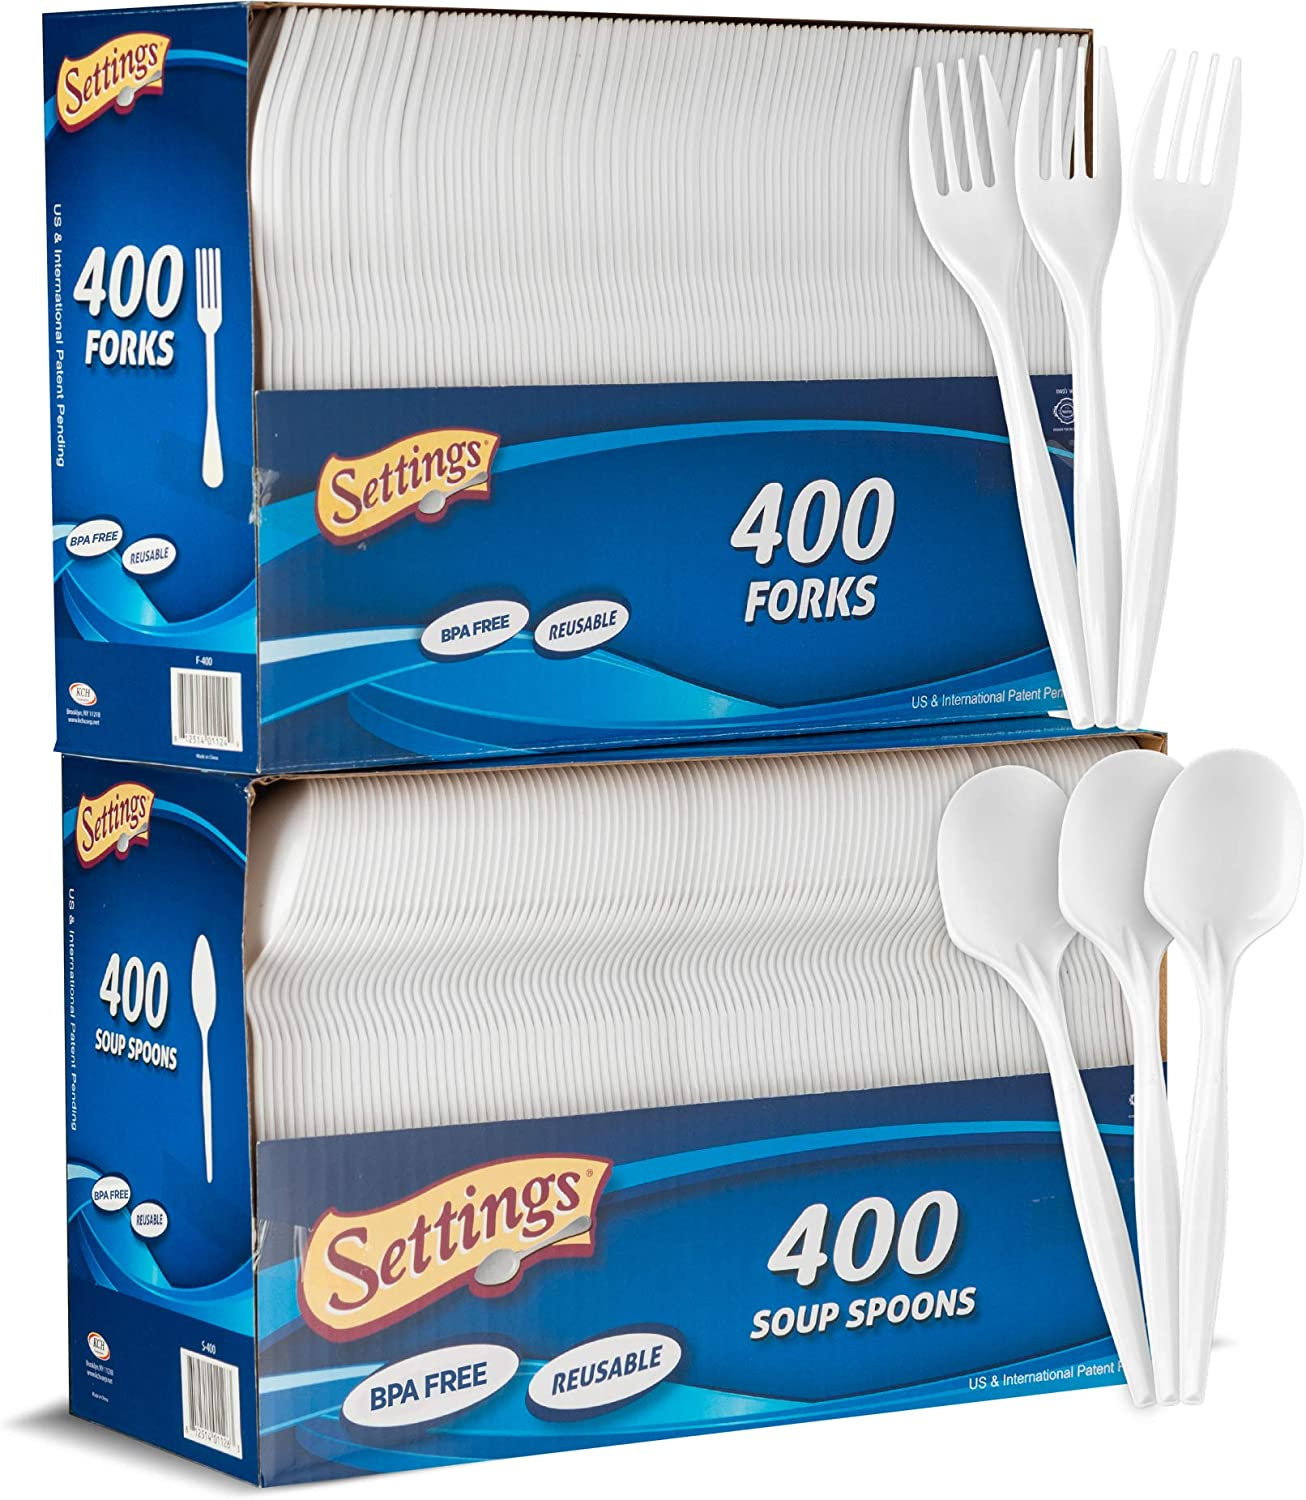 Settings Plastic White 400 Forks And 400 Spoons, Practical Disposable Cutlery, Great For Home, Office, School, Party, Picnics, Restaurant, Take-out Fast Food, Outdoor Events, Or Every Day Use, 2 Boxes